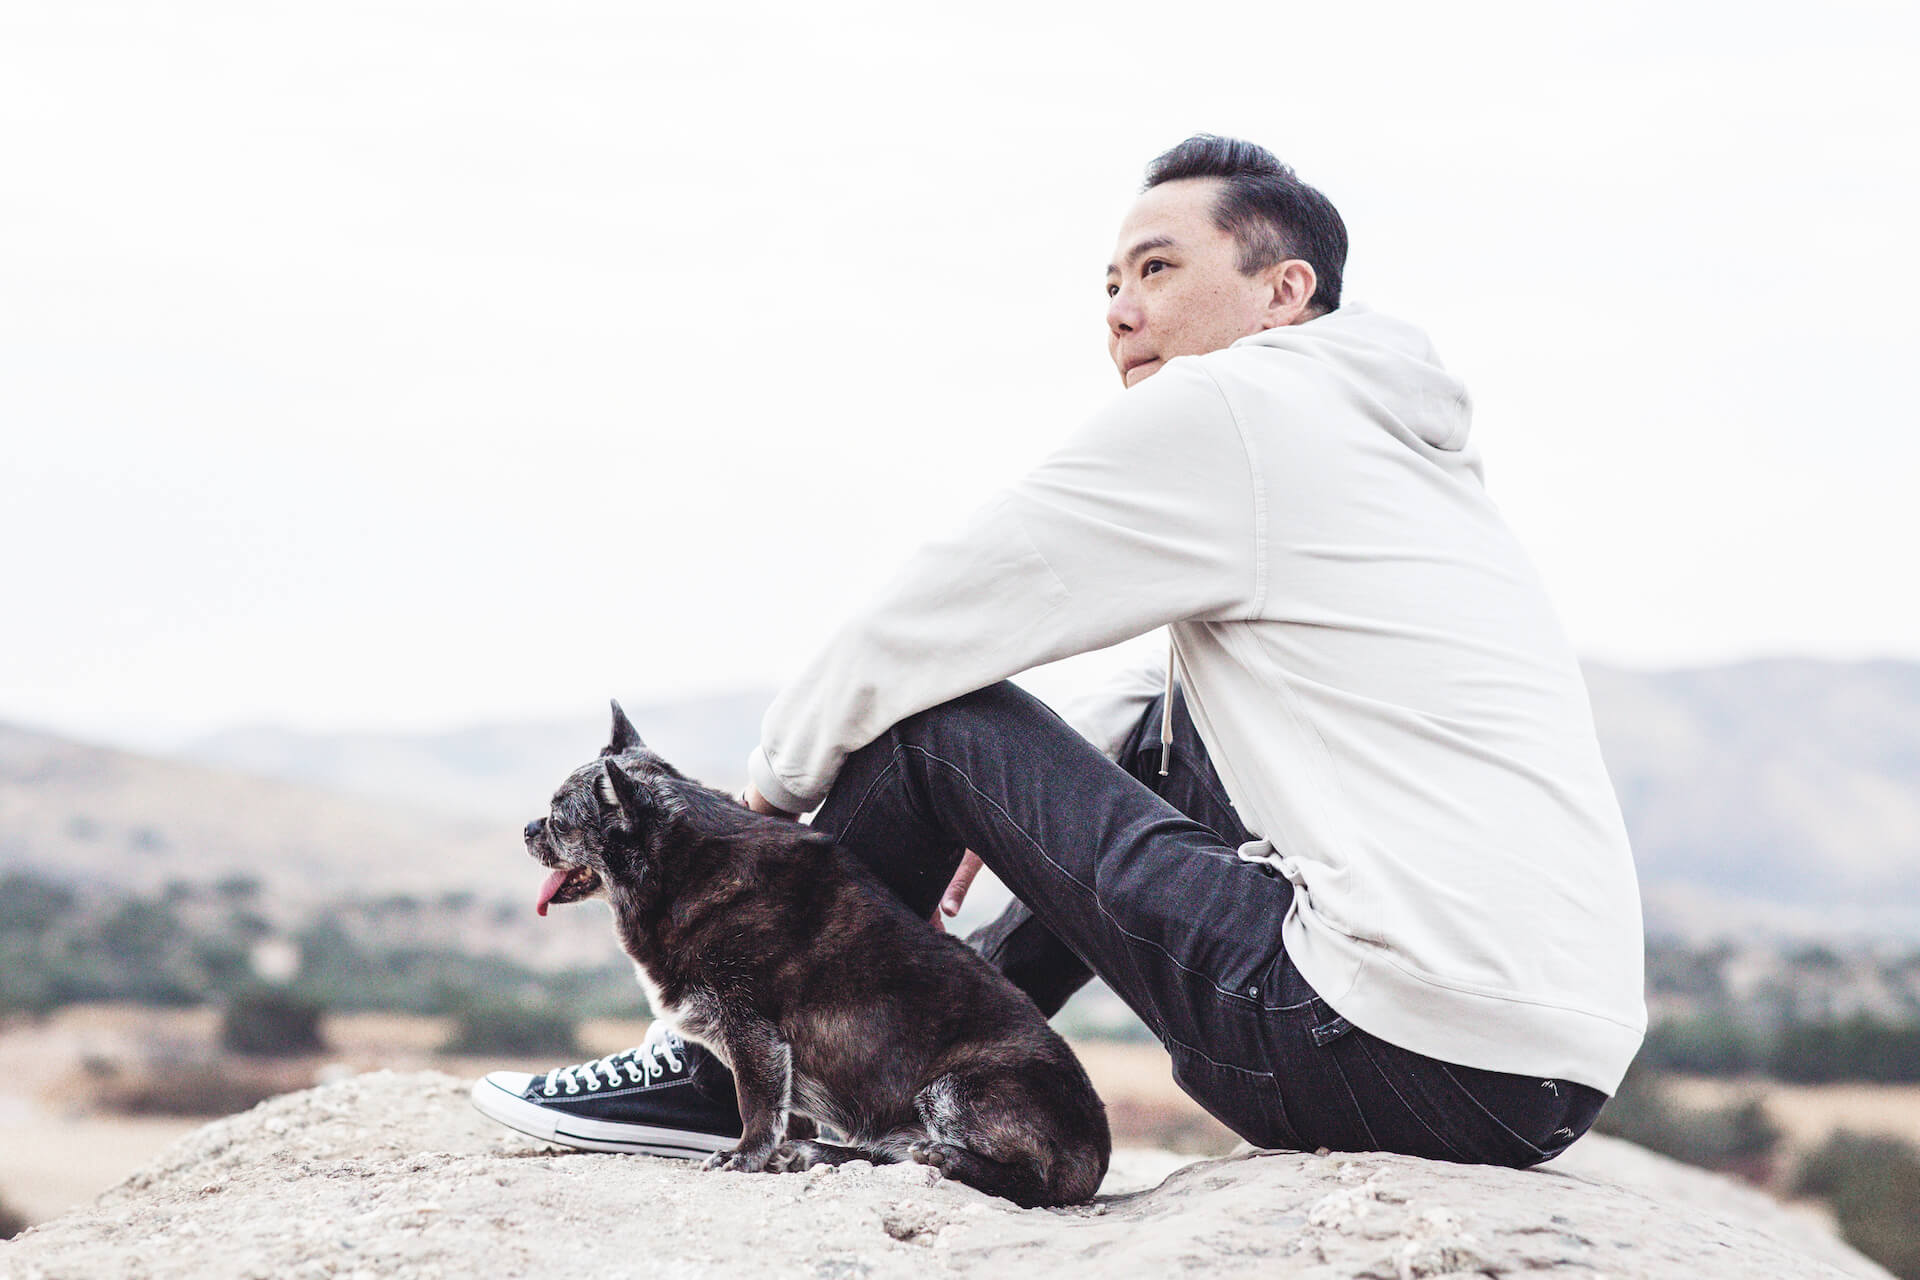 Bobby Tsui: Founder and CEO of The Same Circle Method